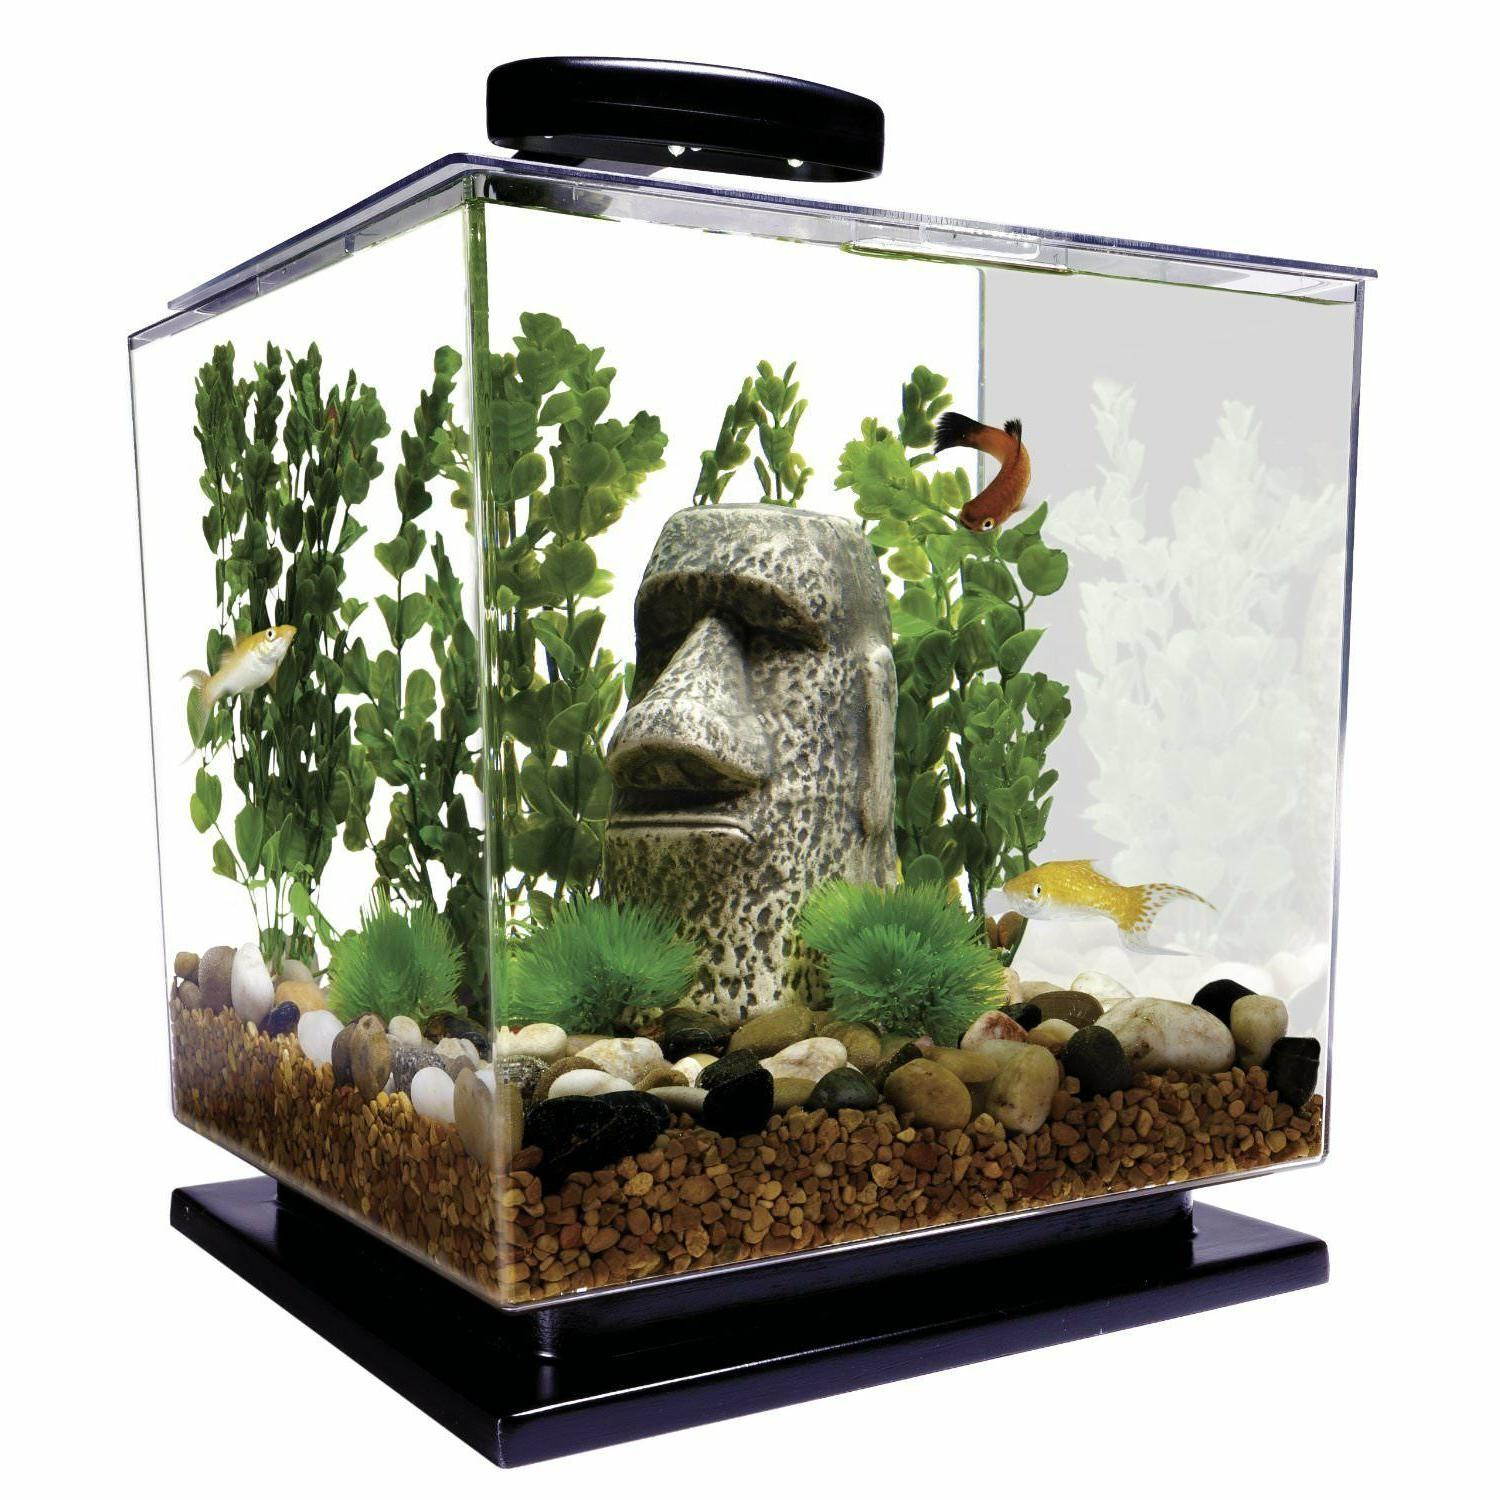 fish aquarium 3 gallon tank kit led